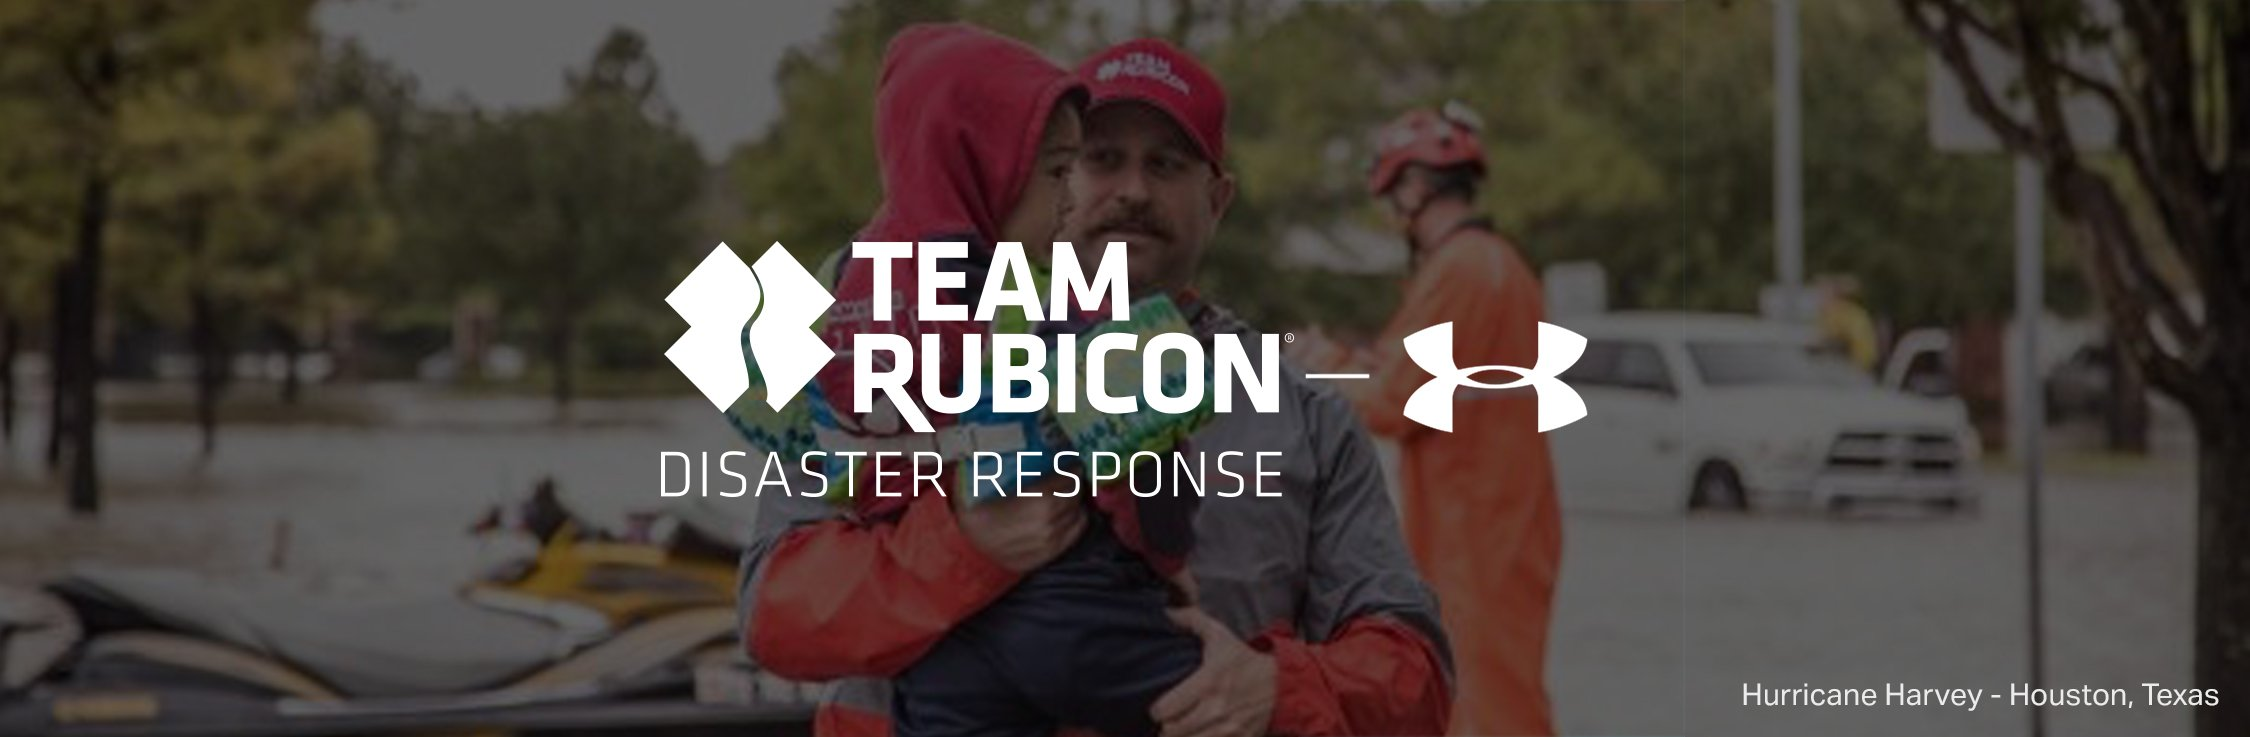 Sports will change the world under armour us team rubicon disaster response under armour logos with man carrying boy after hurricane harvey falaconquin